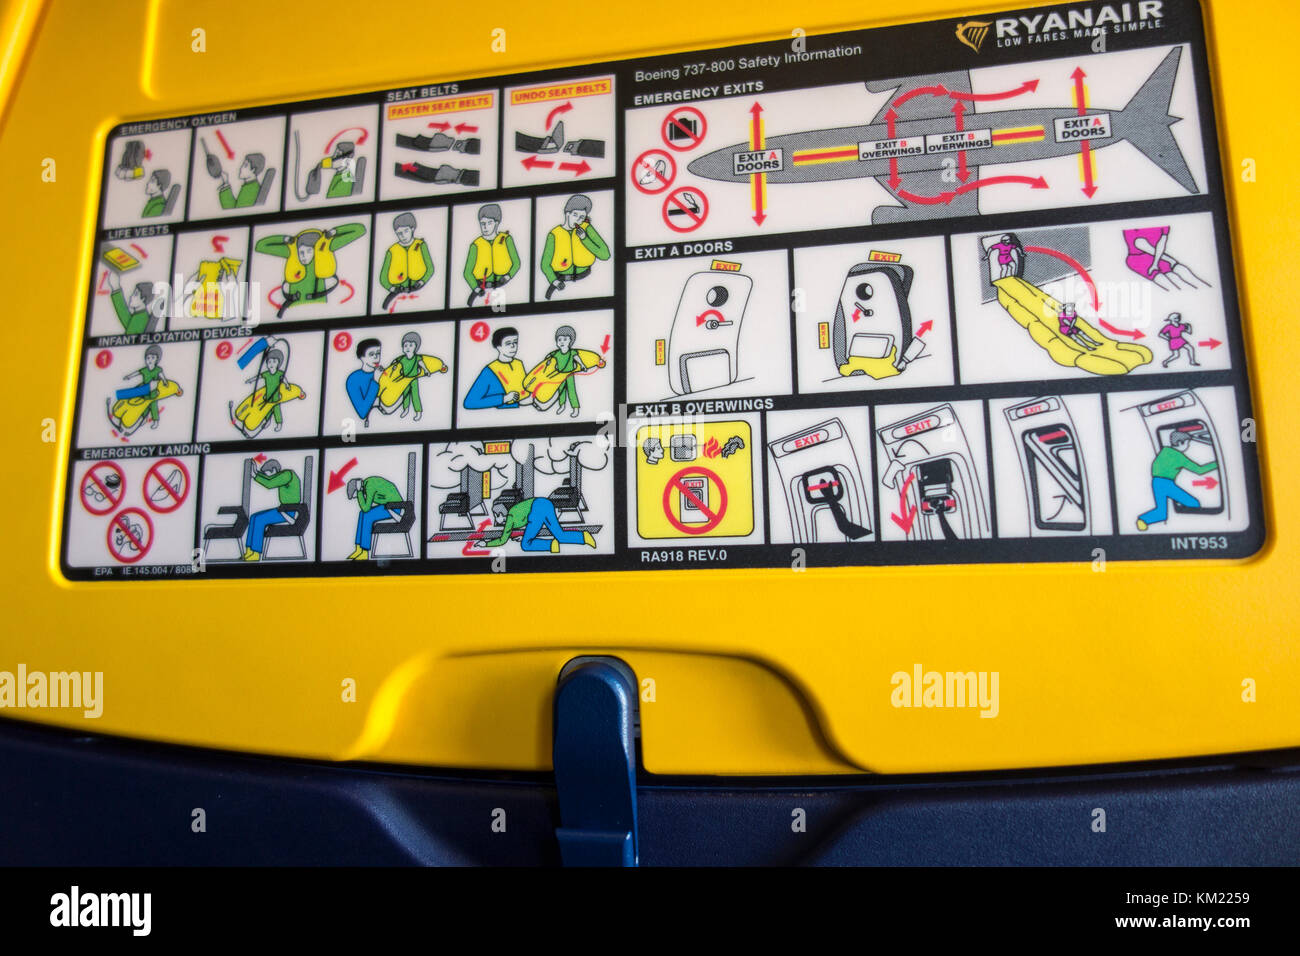 Ryanair aeroplane airplane safety information card printed on the back of a seat - Stock Image